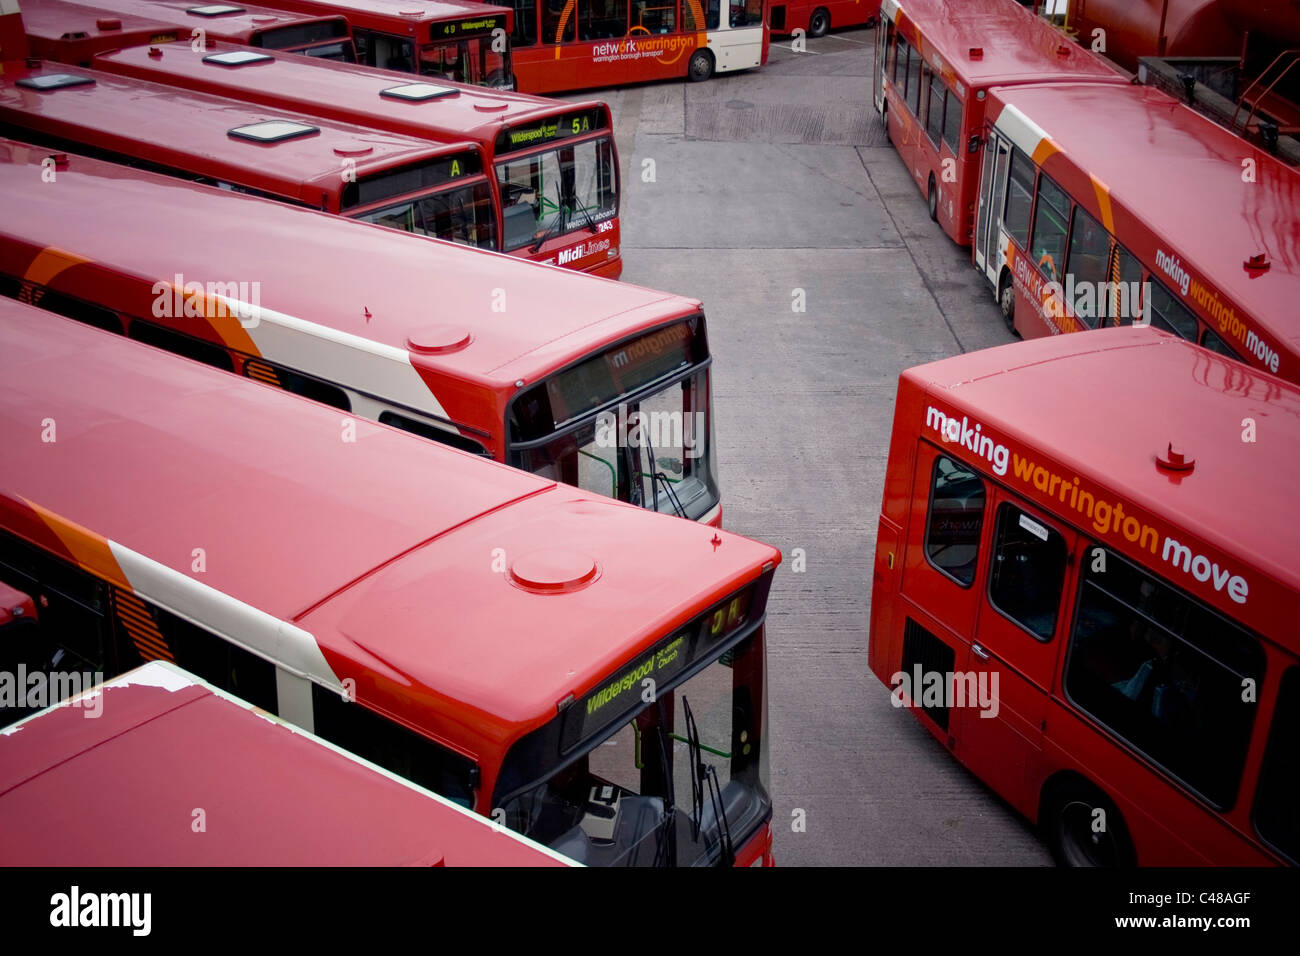 A number of Warrington buses sit parked in a depot during a public holiday. - Stock Image